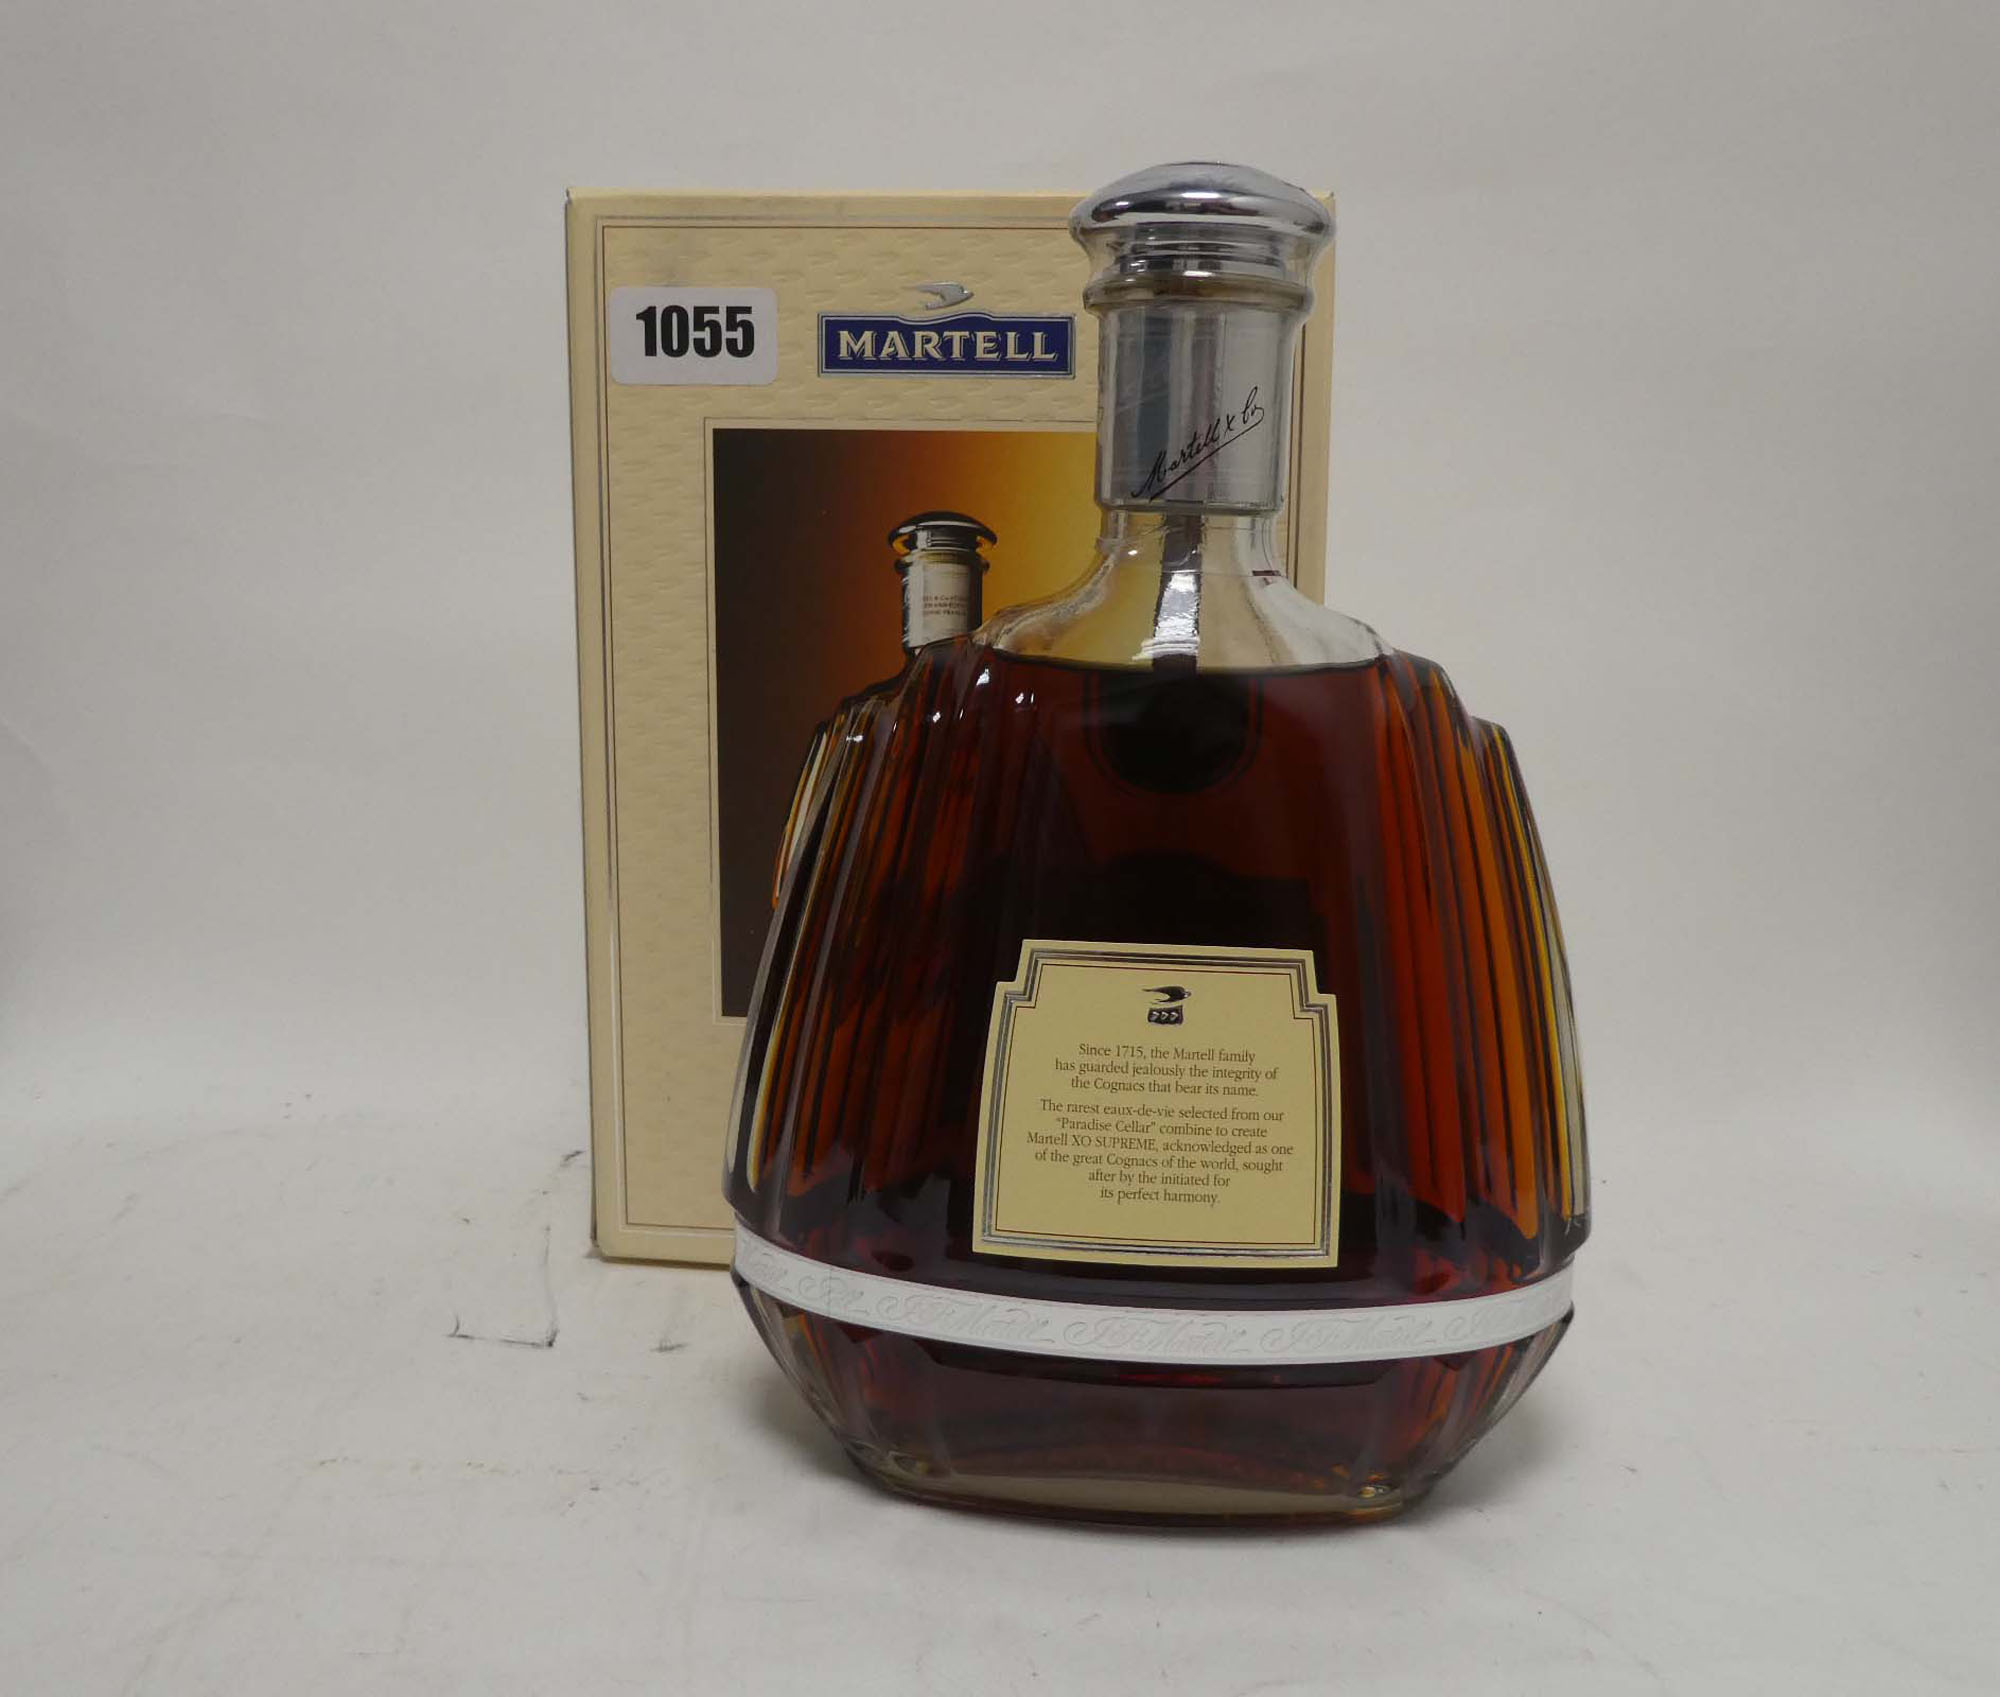 A bottle of J&F Martell XO Supreme Cognac with box old style bottle 1 litre 40% - Image 2 of 2